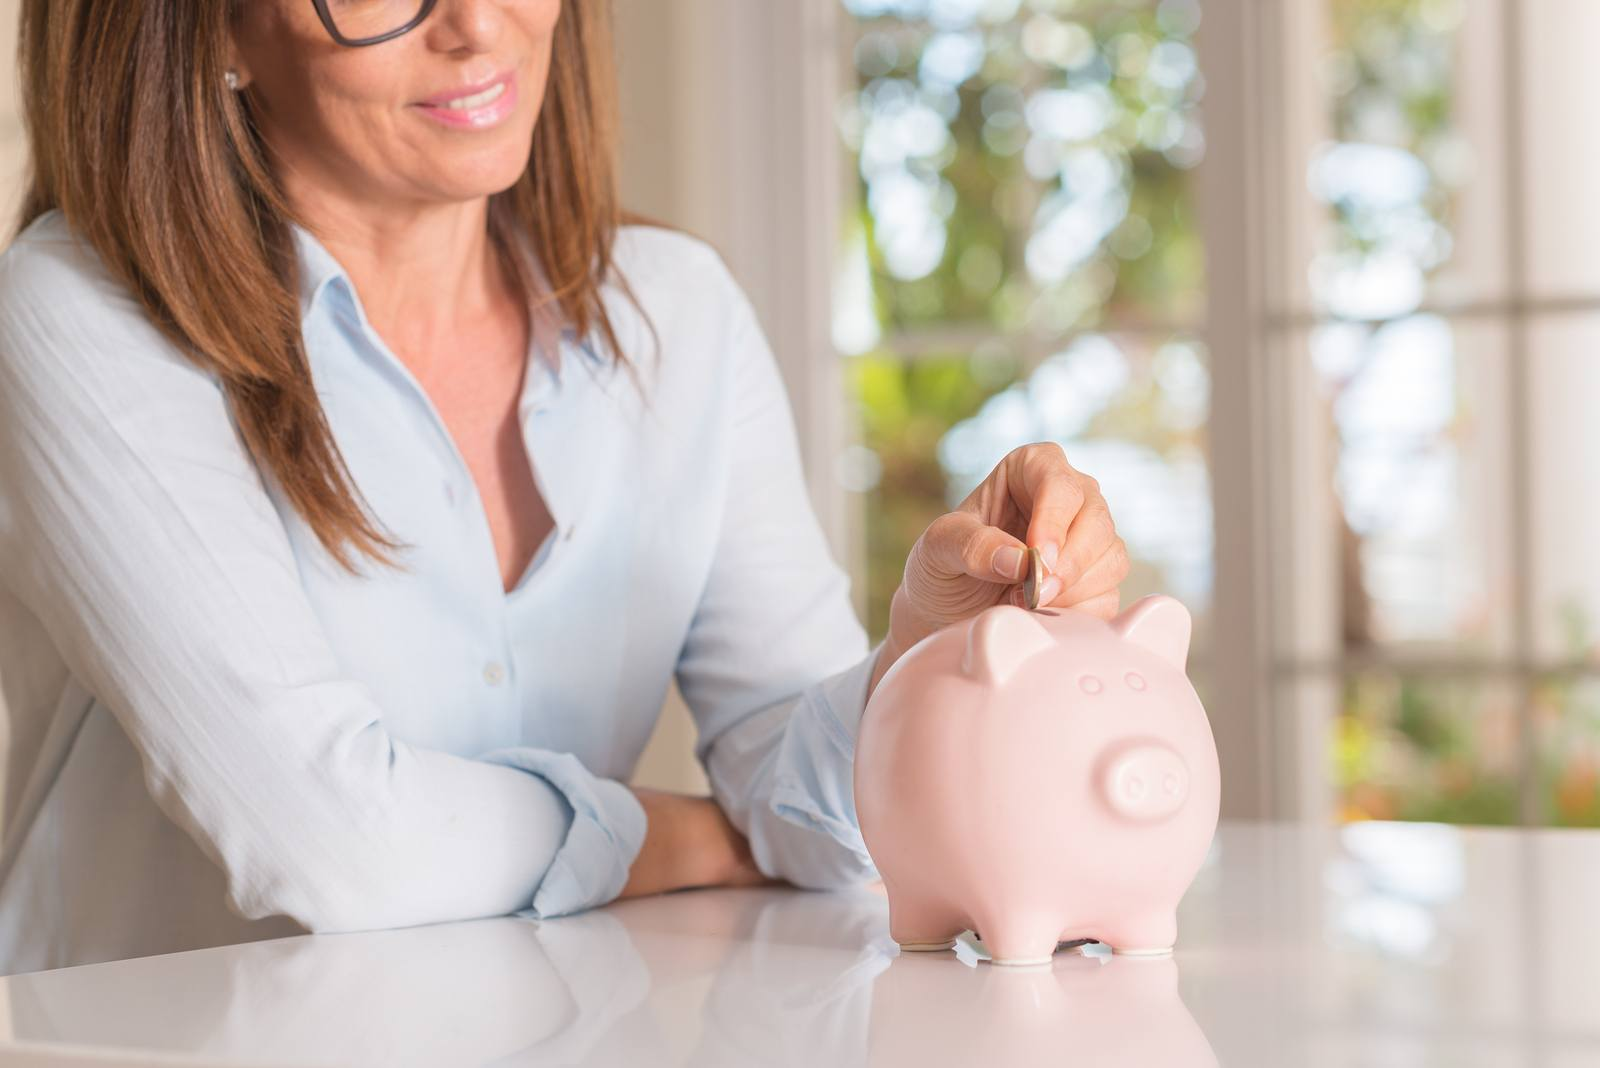 4 Money Tips You Need To Know To Boost Your Bank Balance